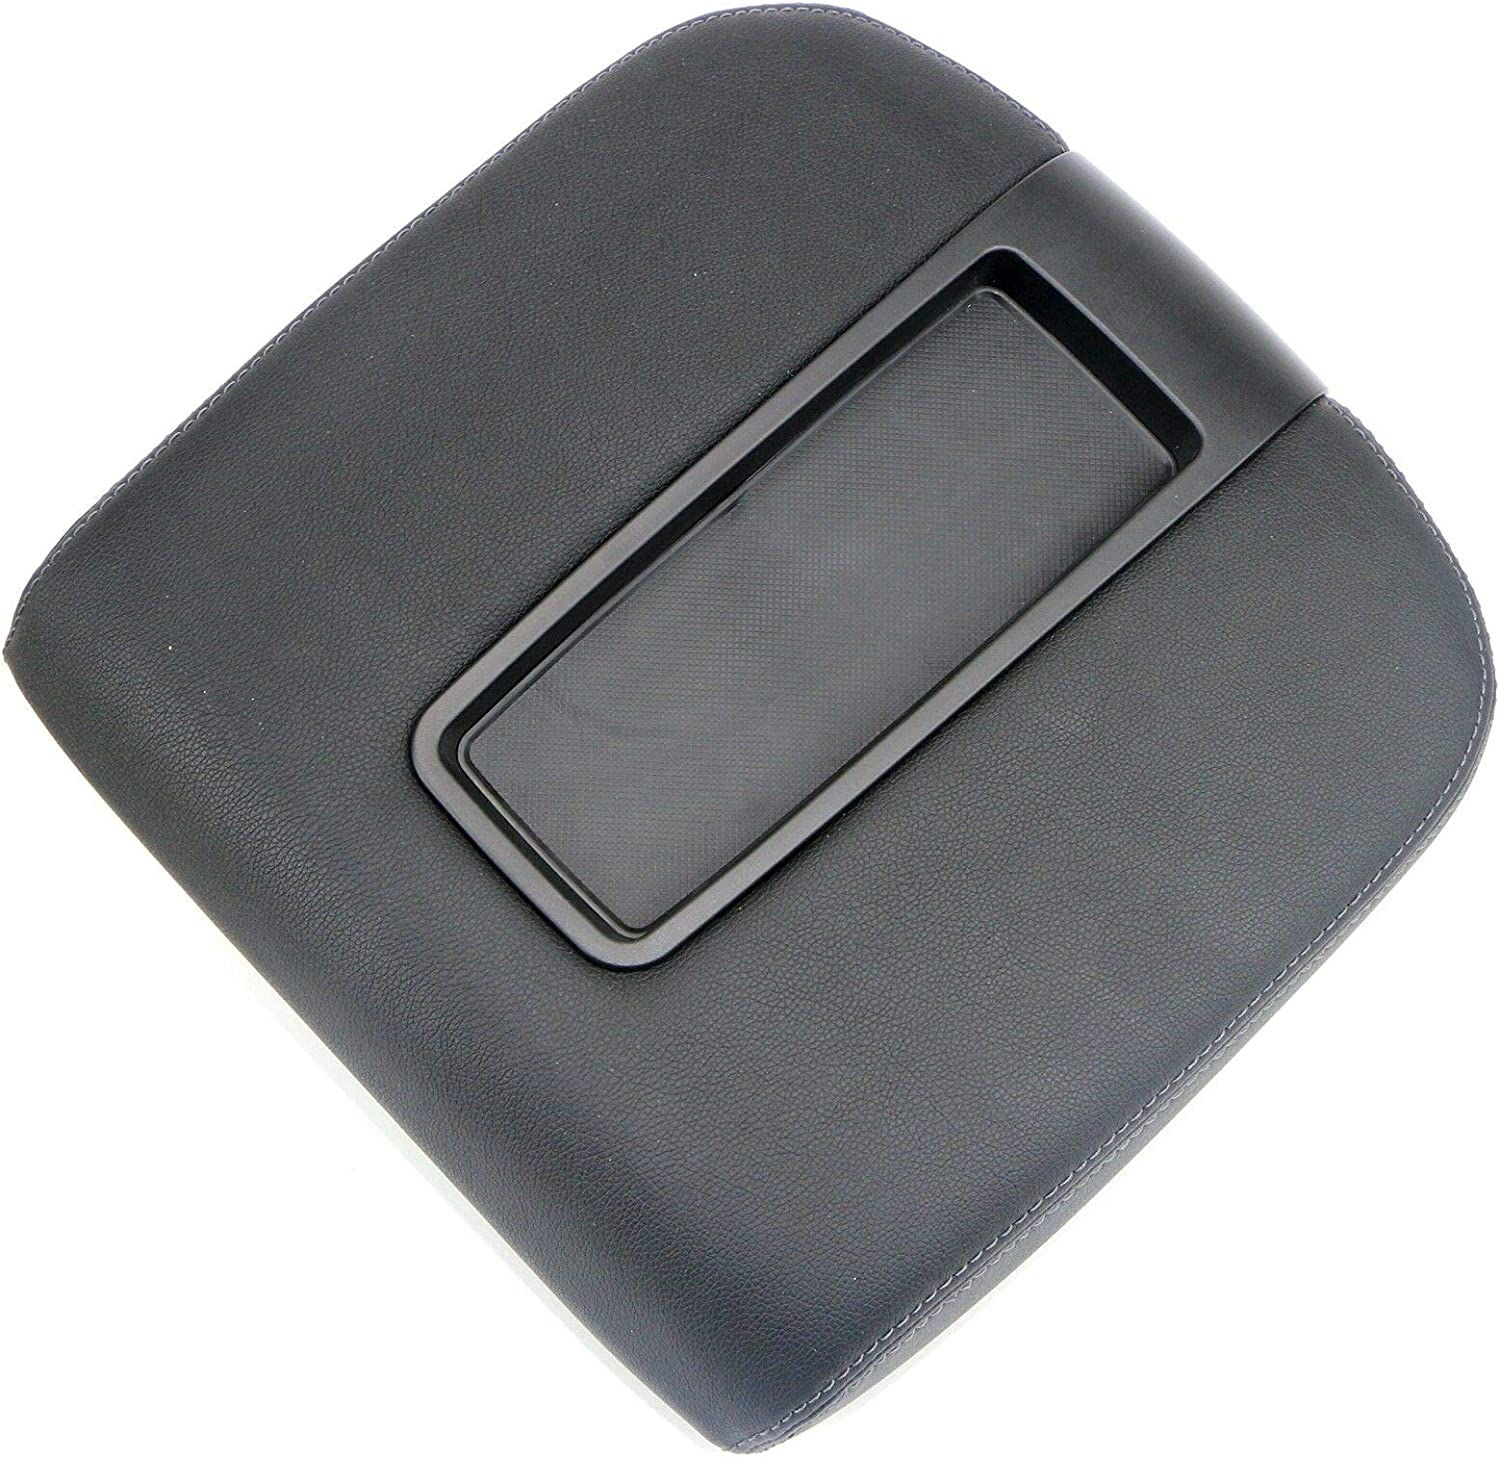 Center Console lid Arm Rest Cover Replacement for 2007-2014 Chevy ...